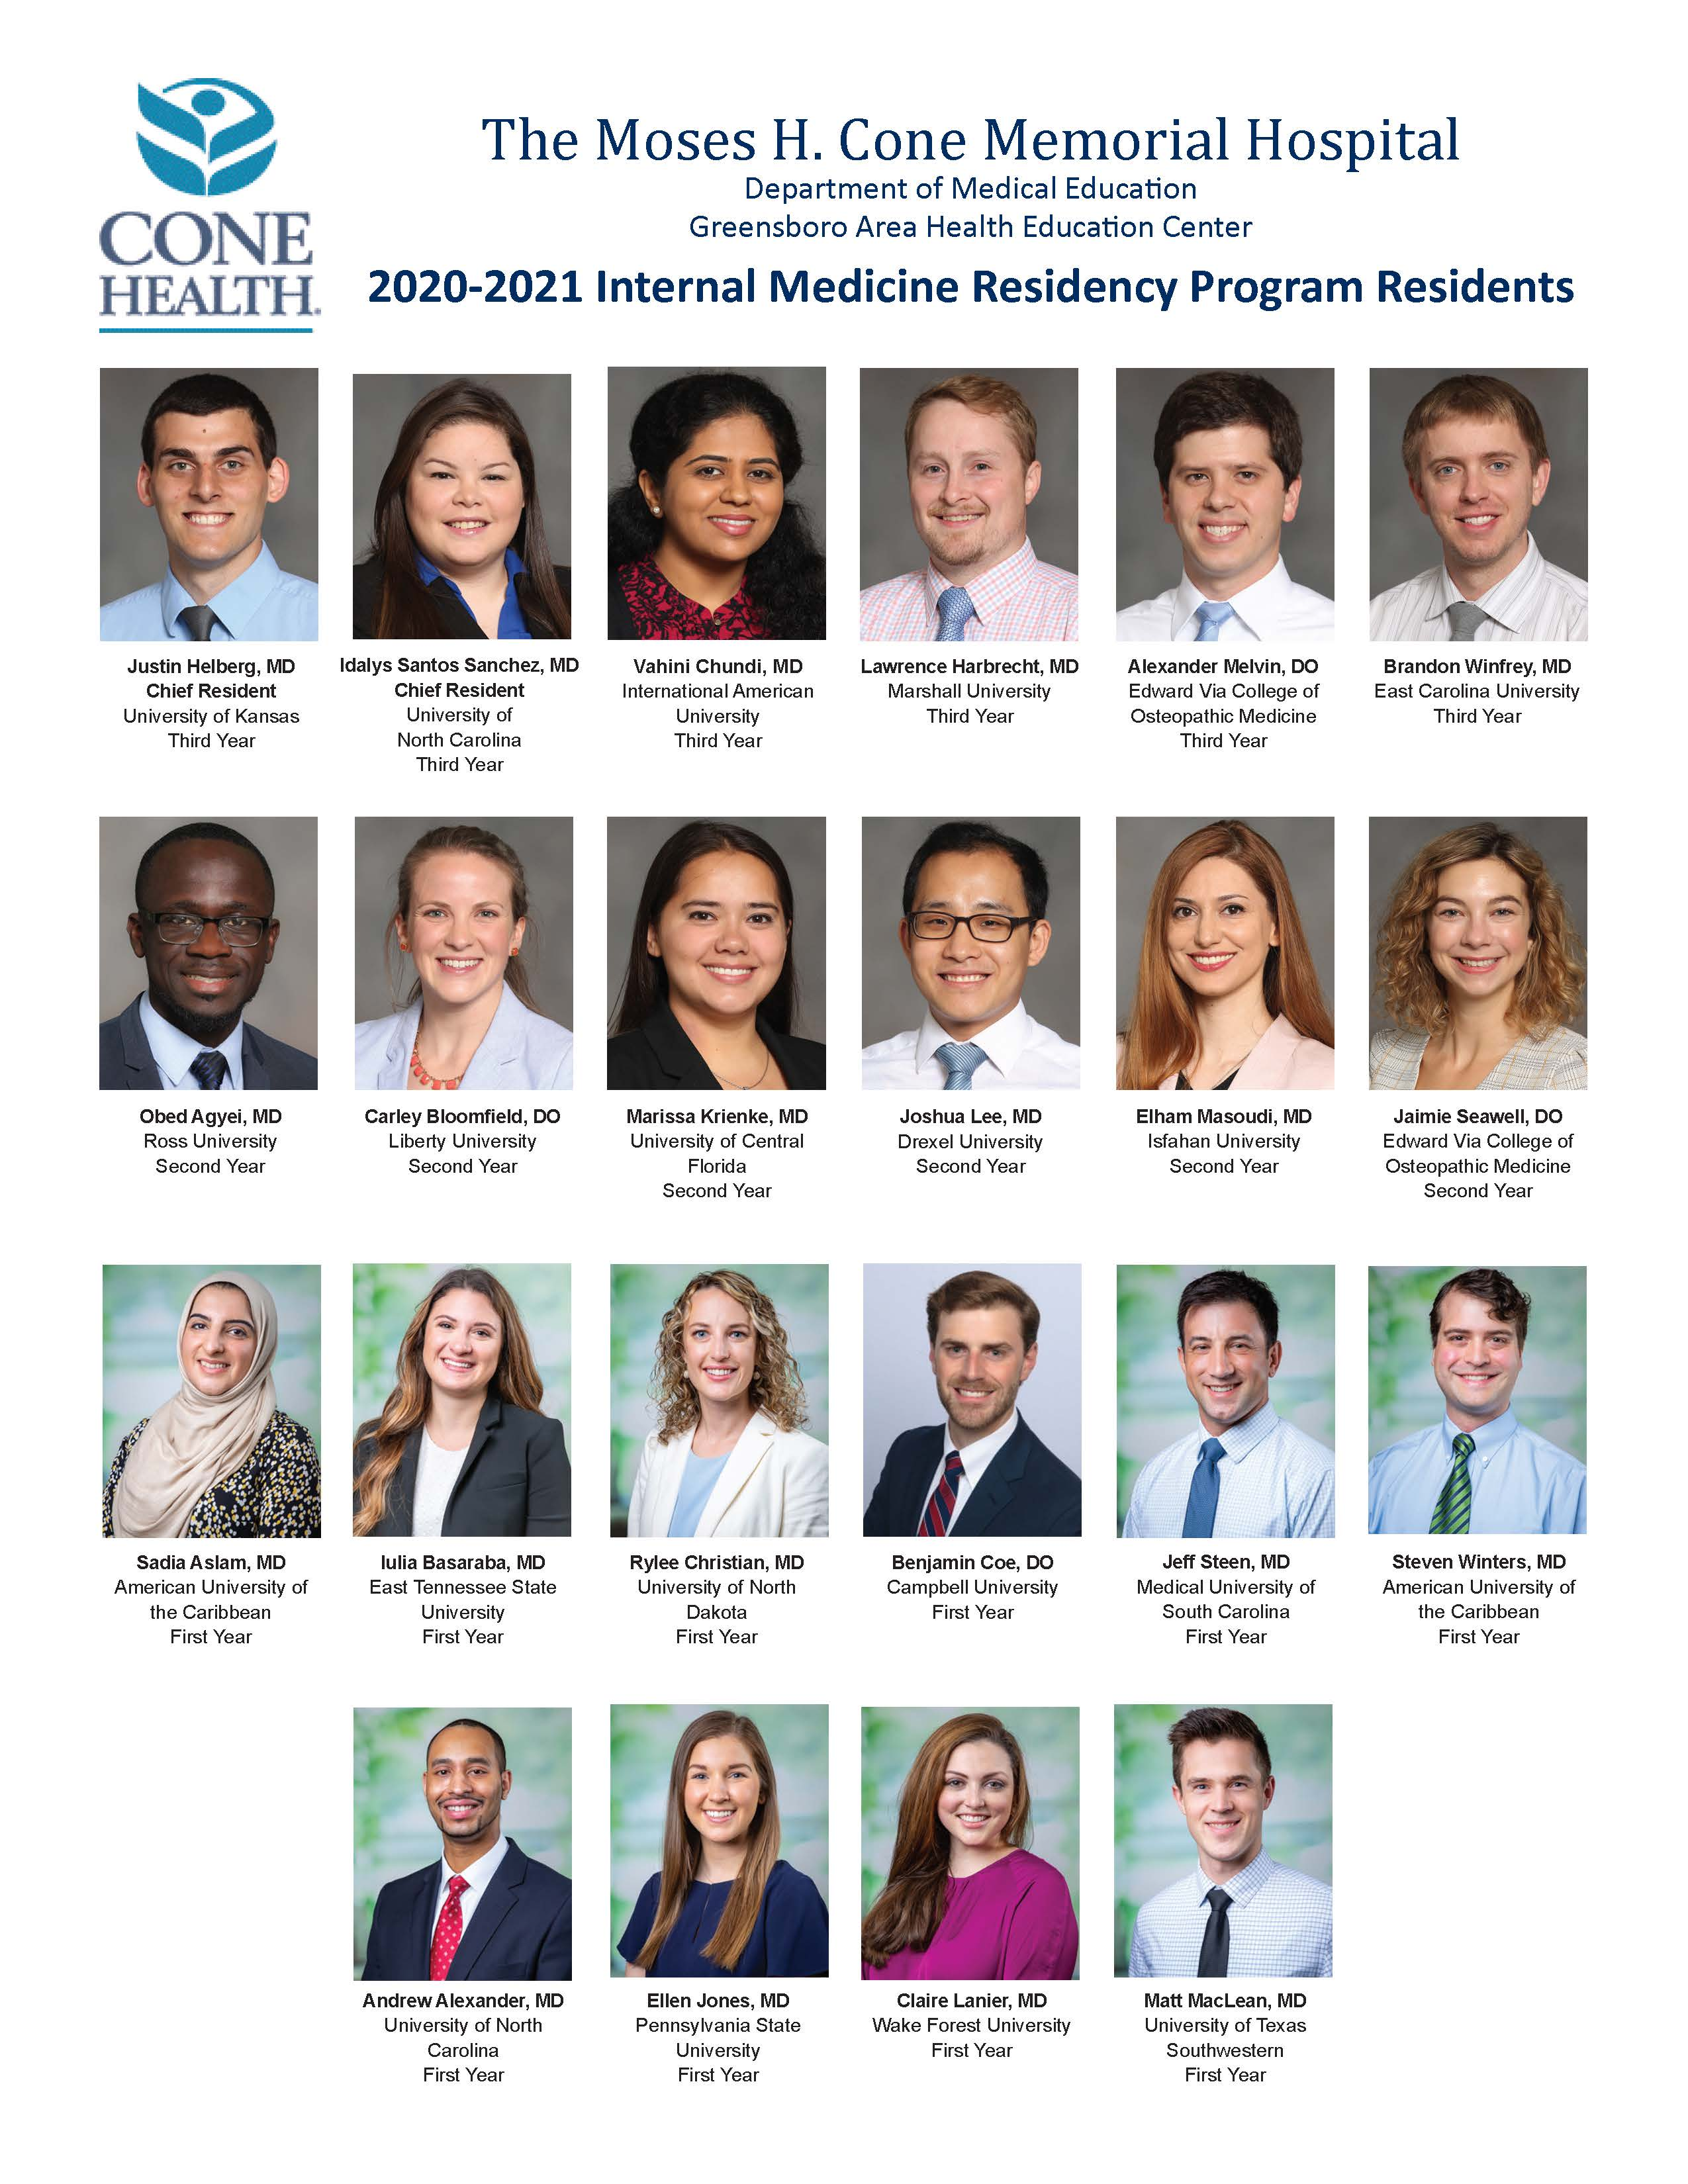 2017-2018 Internal Medicine Residents